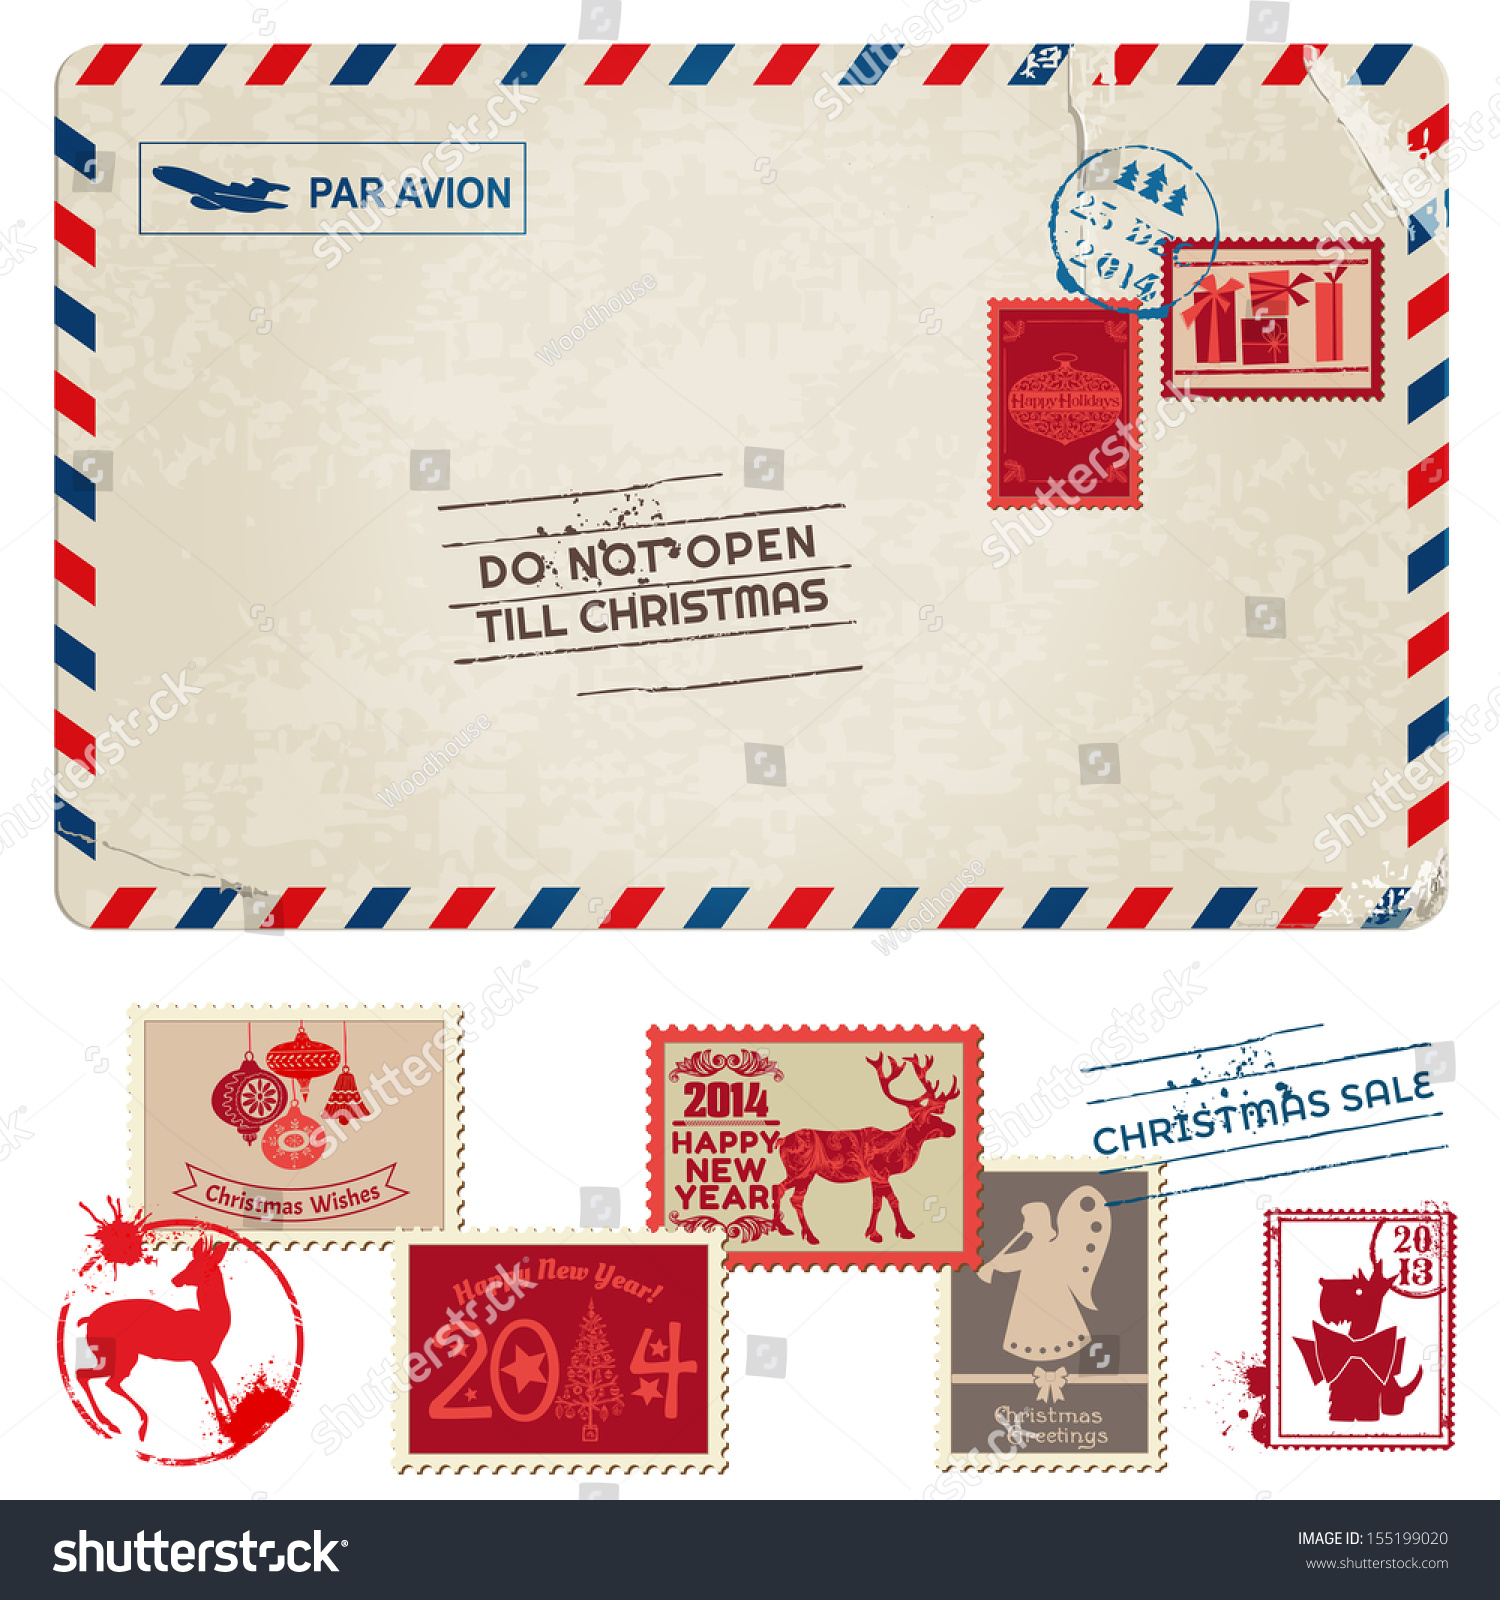 How to scrapbook postcards